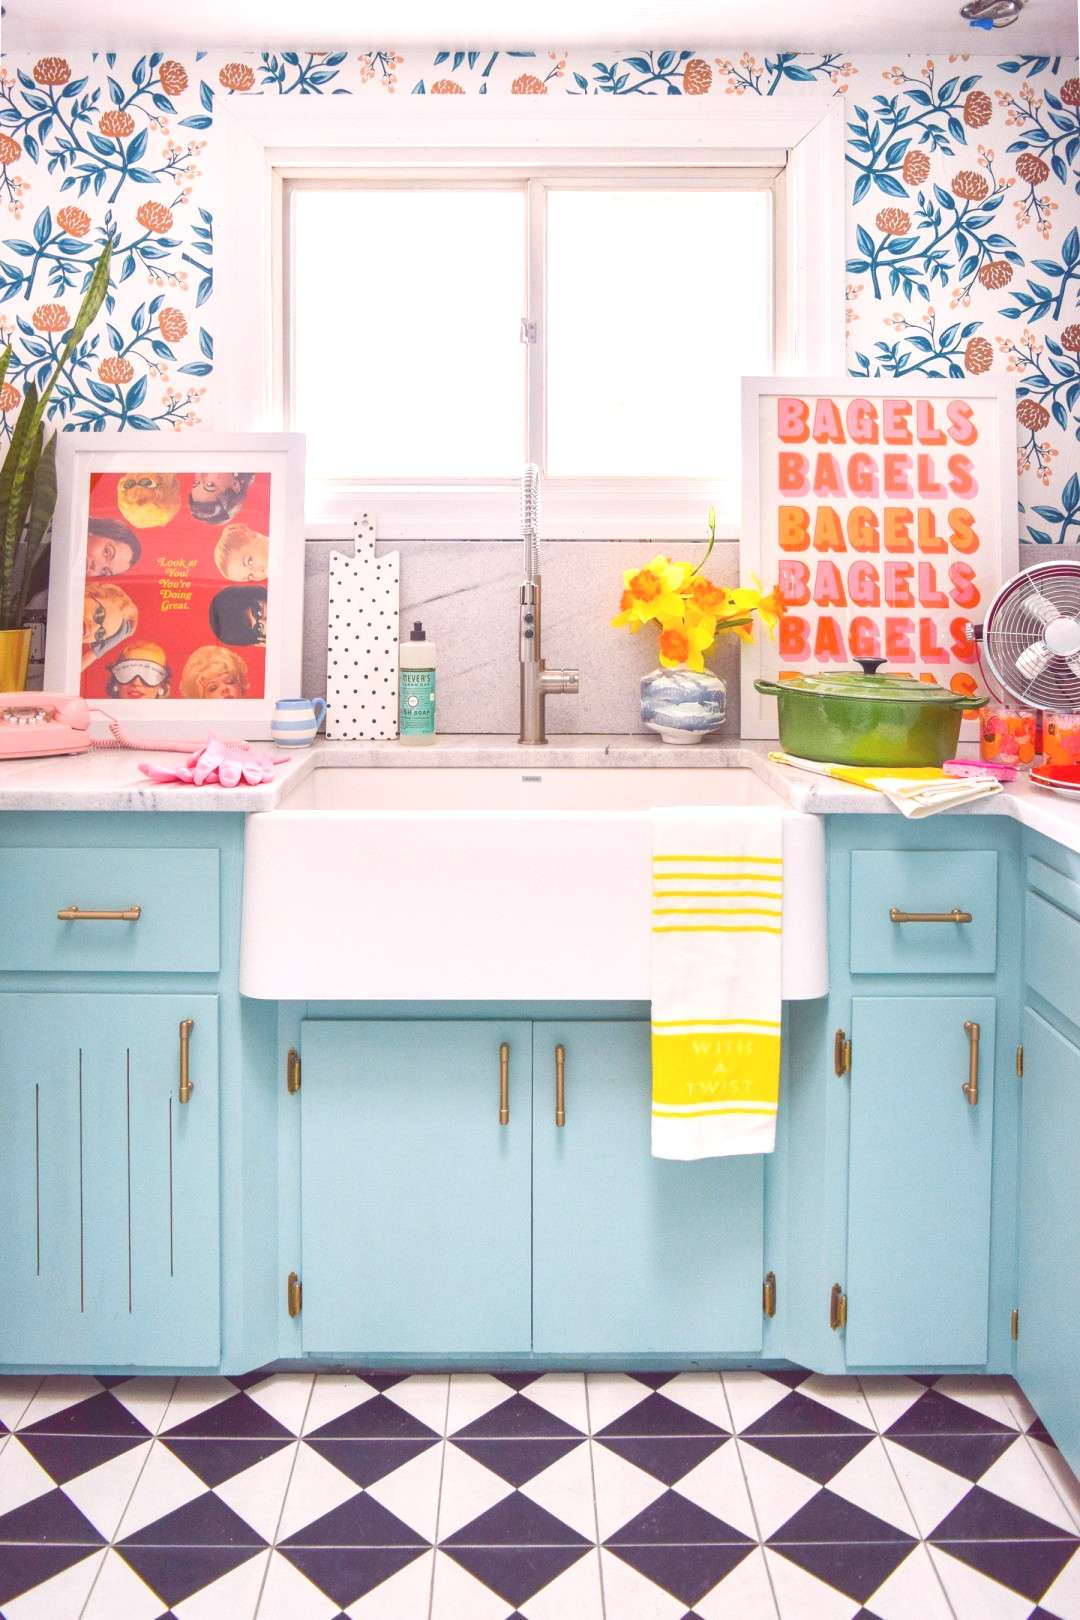 Choosing a Retro Sink - Each Of Us Has Different Needs And Material Means ... - -